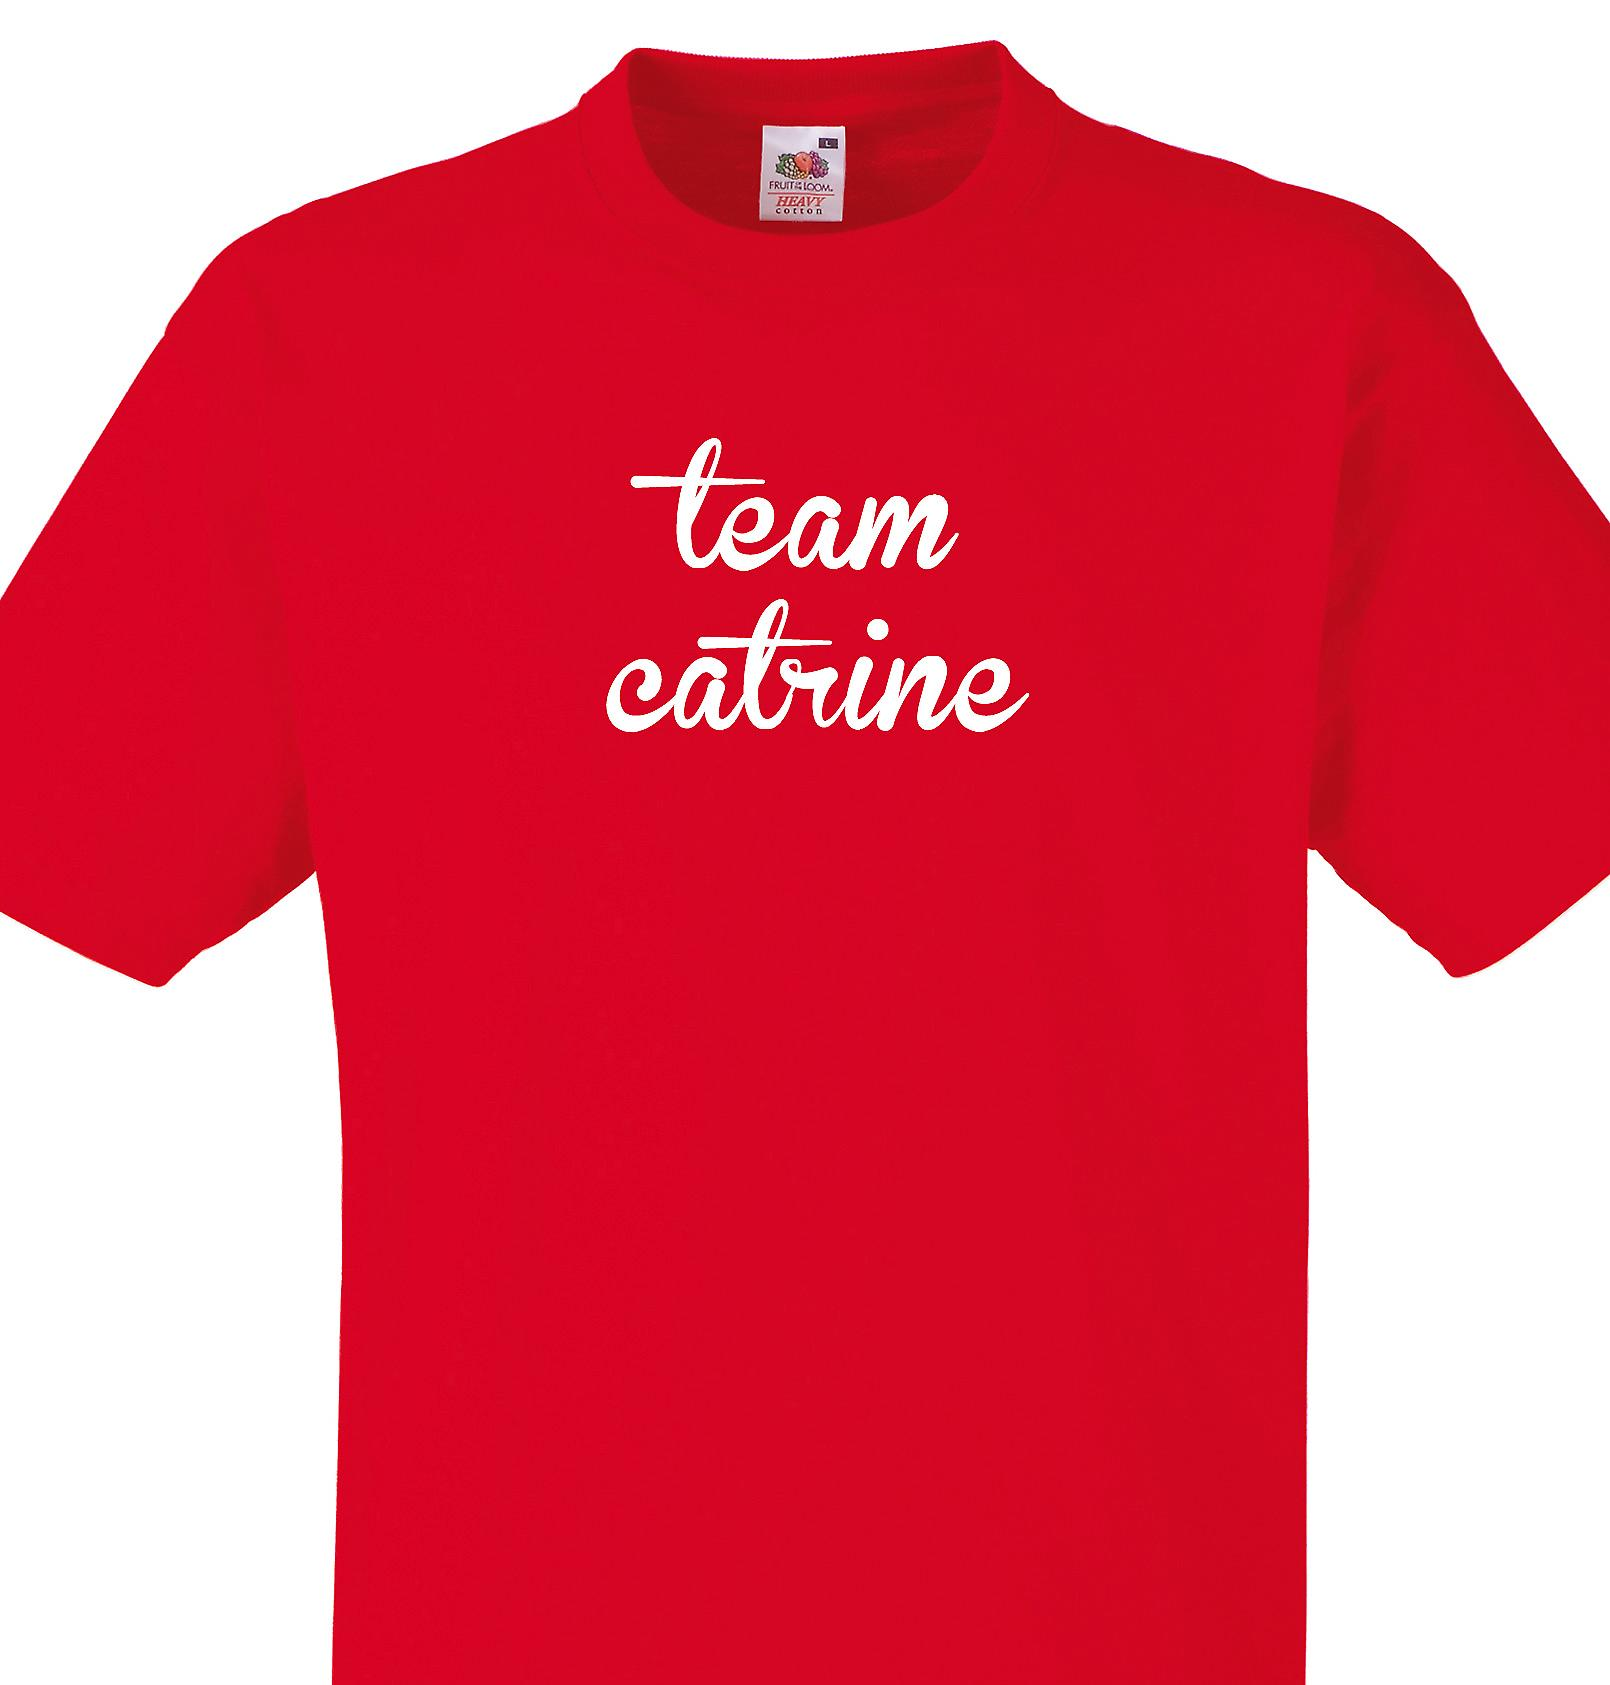 Team Catrine Red T shirt